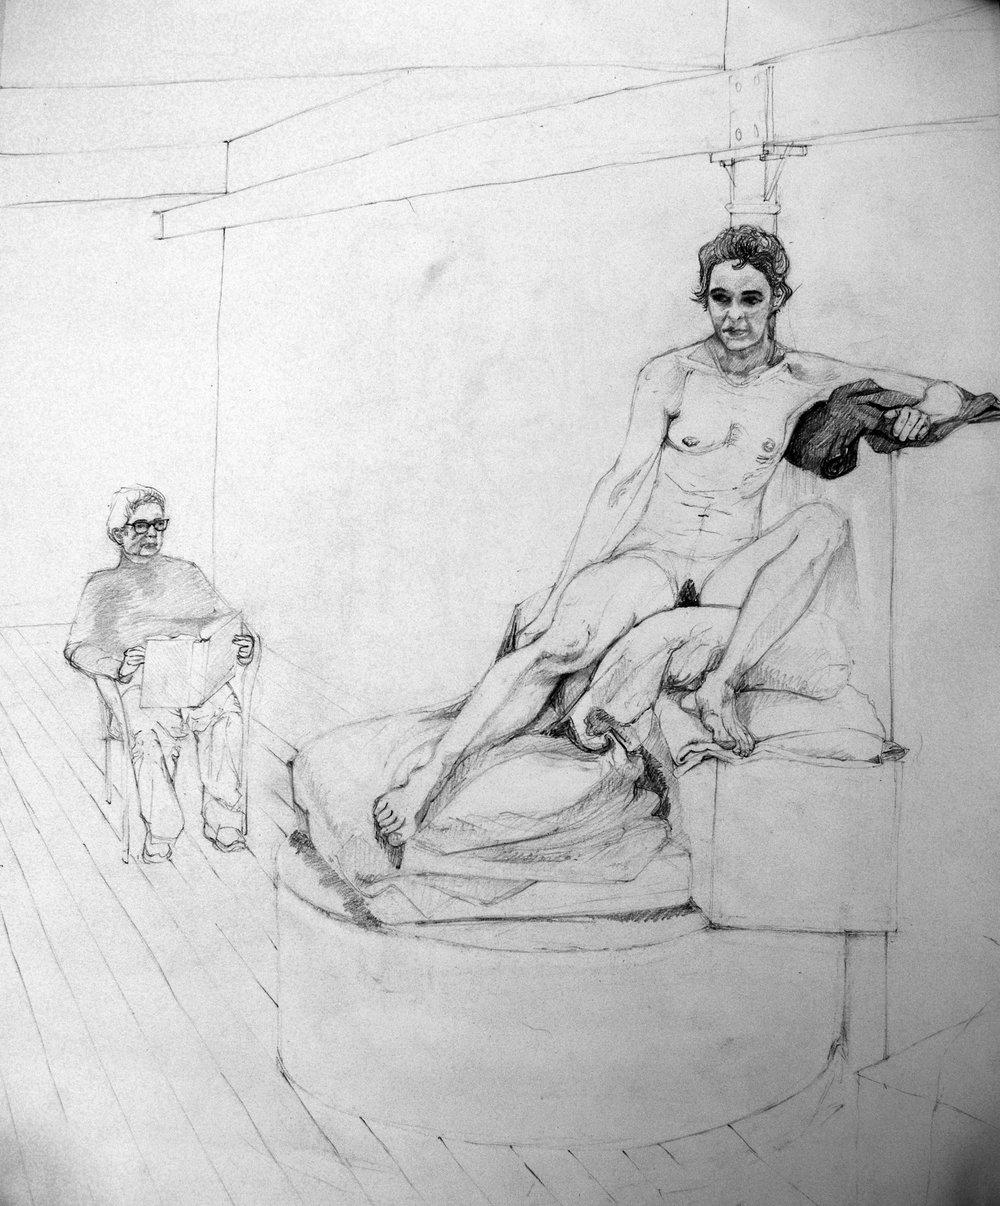 5. Untitled_65x50_pencil on paper.jpg